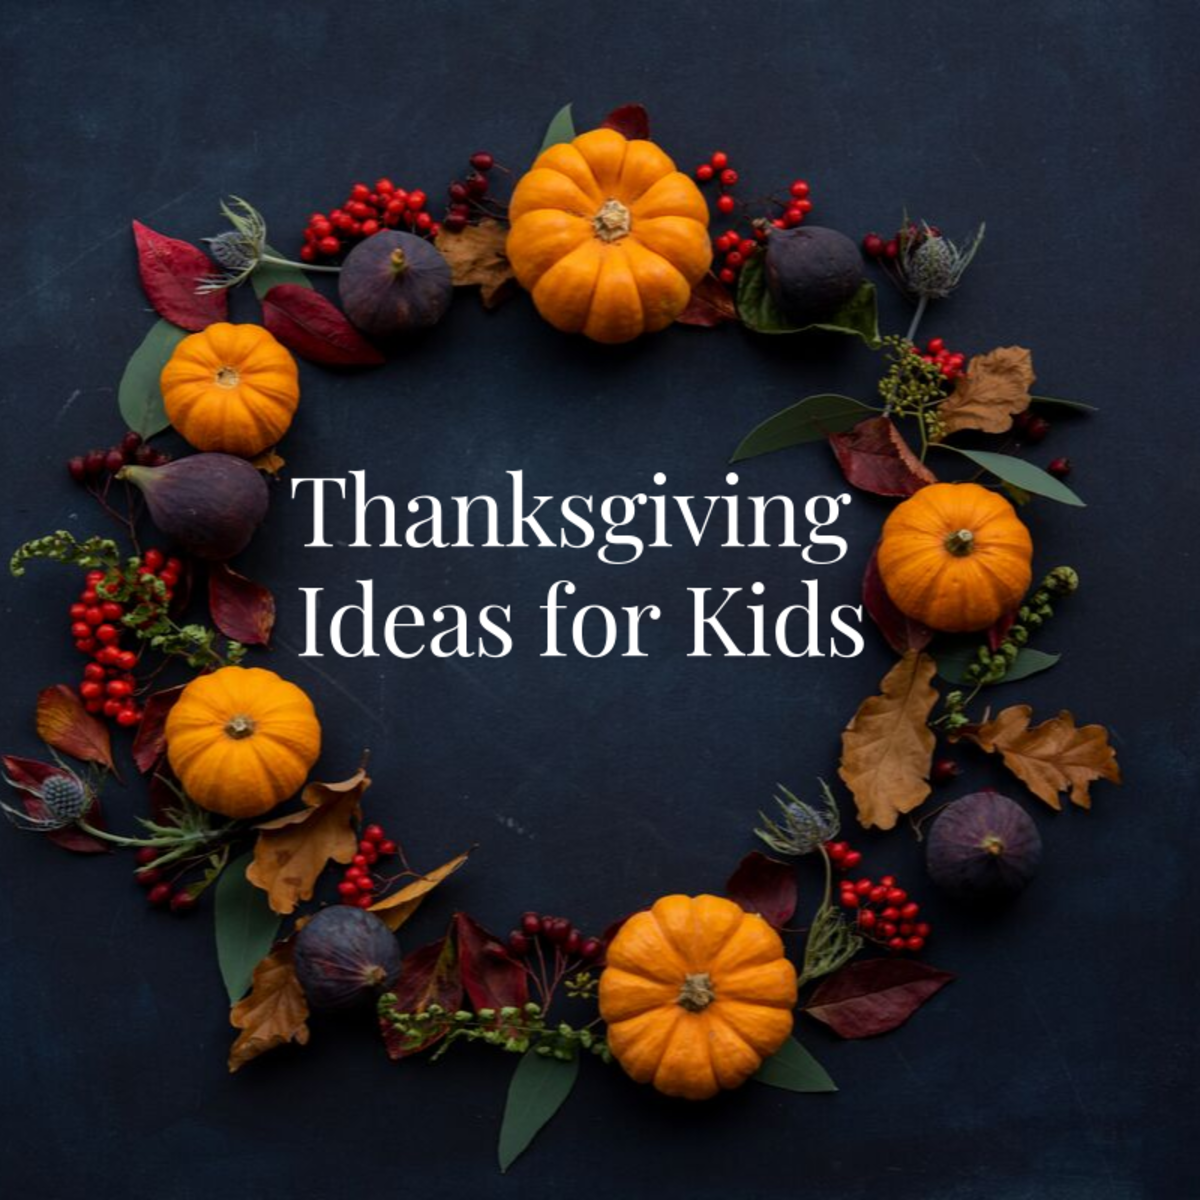 These activities are sure to help your kids have a happy Thanksgiving.